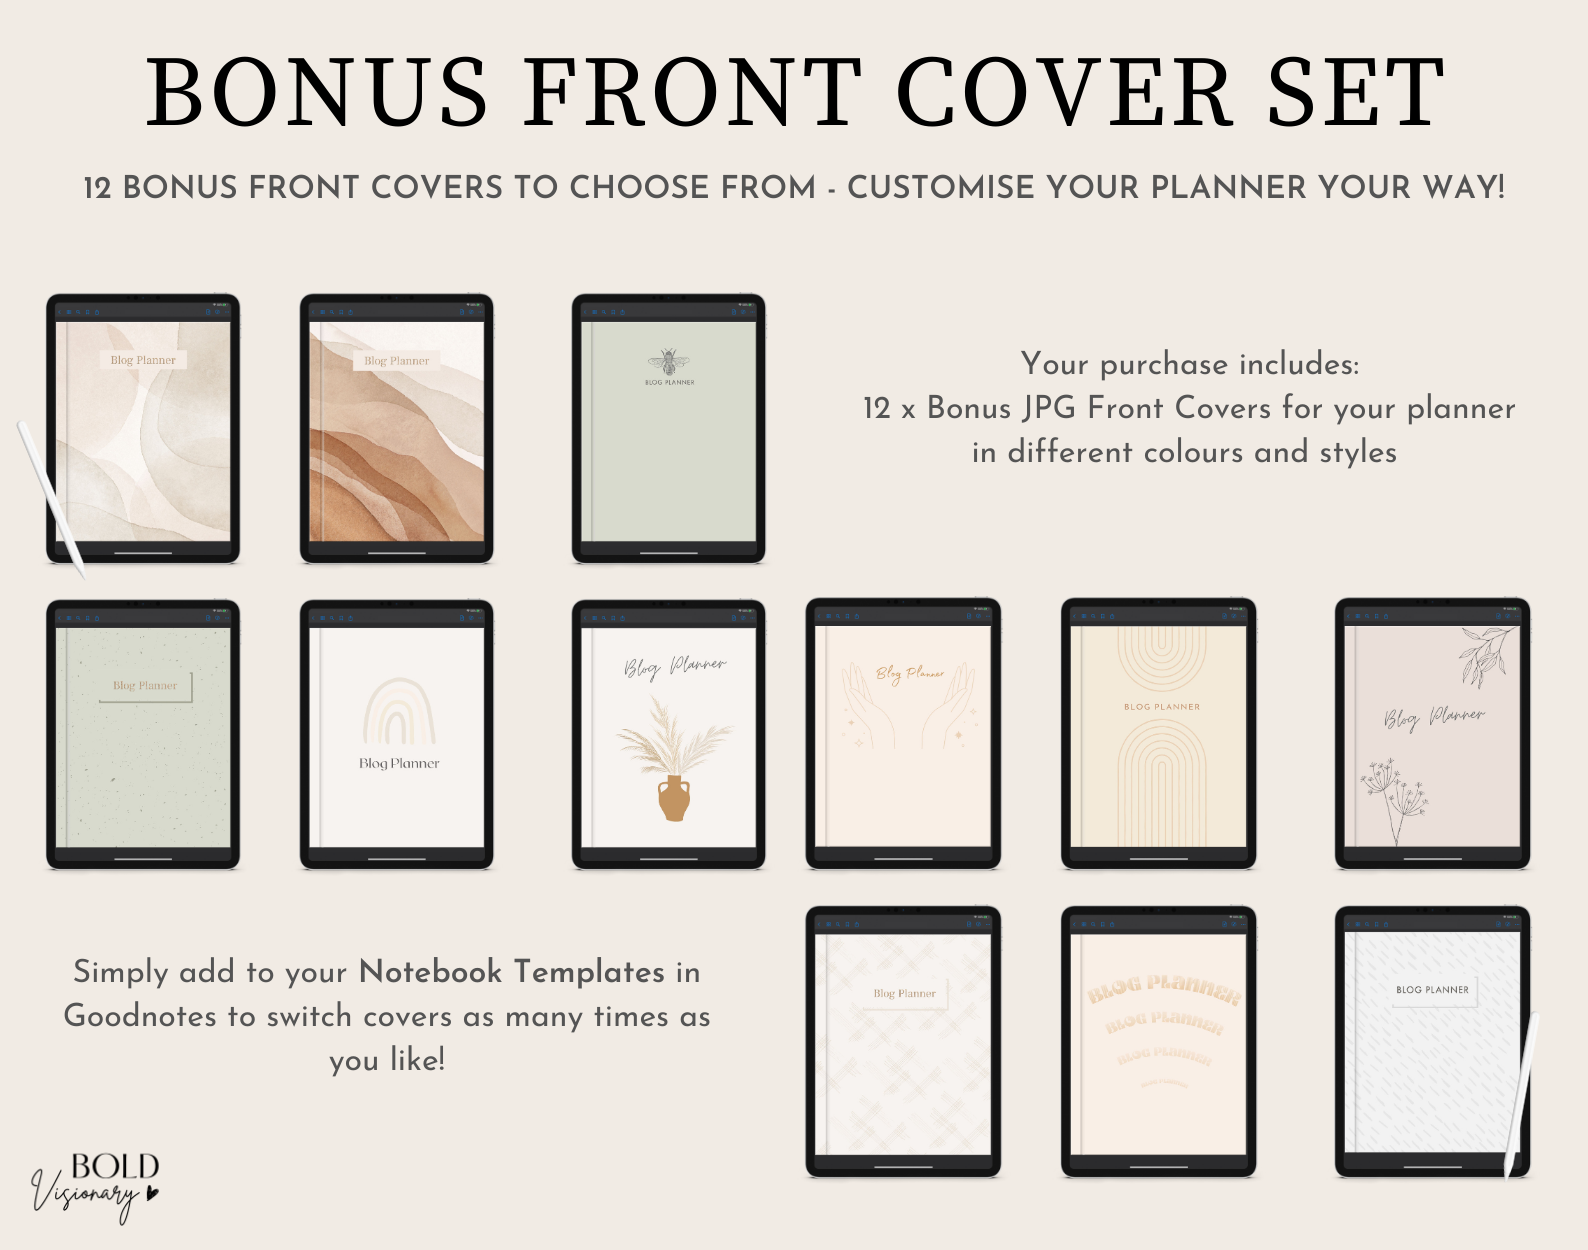 10Extra-Covers-Bold-Visionary-Digital-Blog-Planner